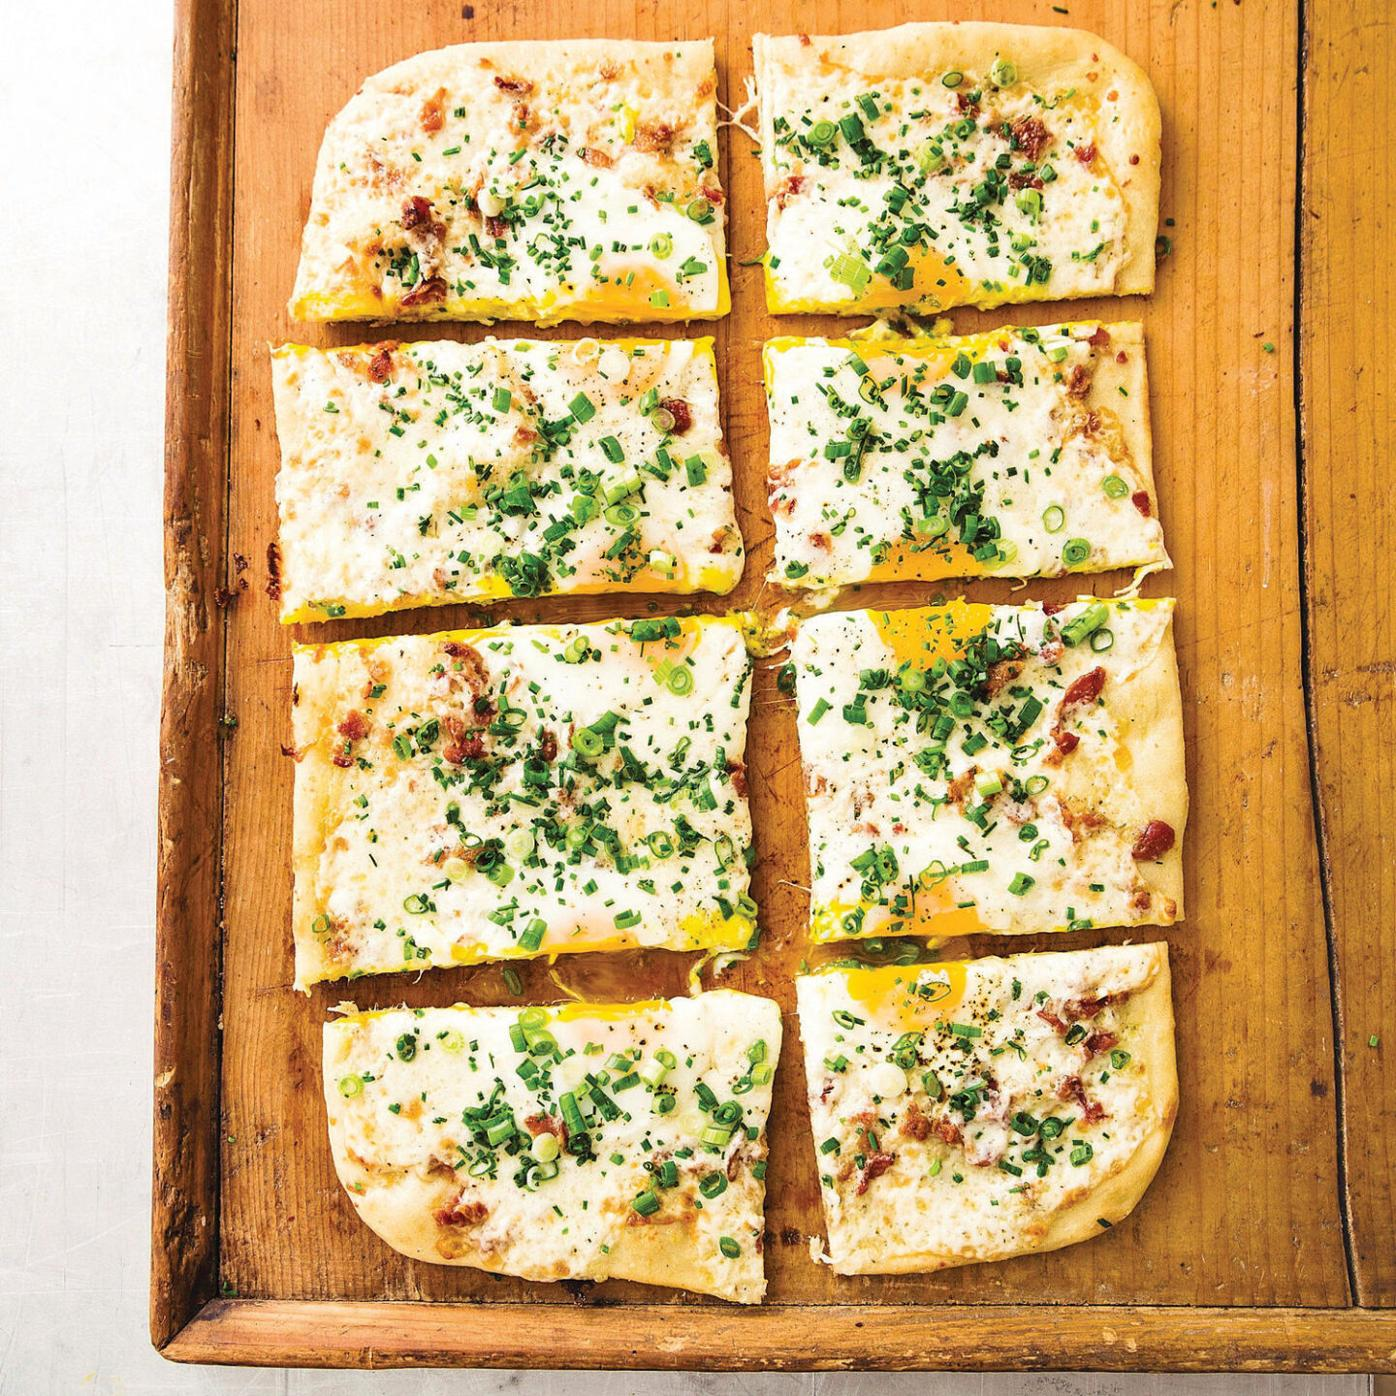 Breakfast pizza is ideal for a brunch crowd